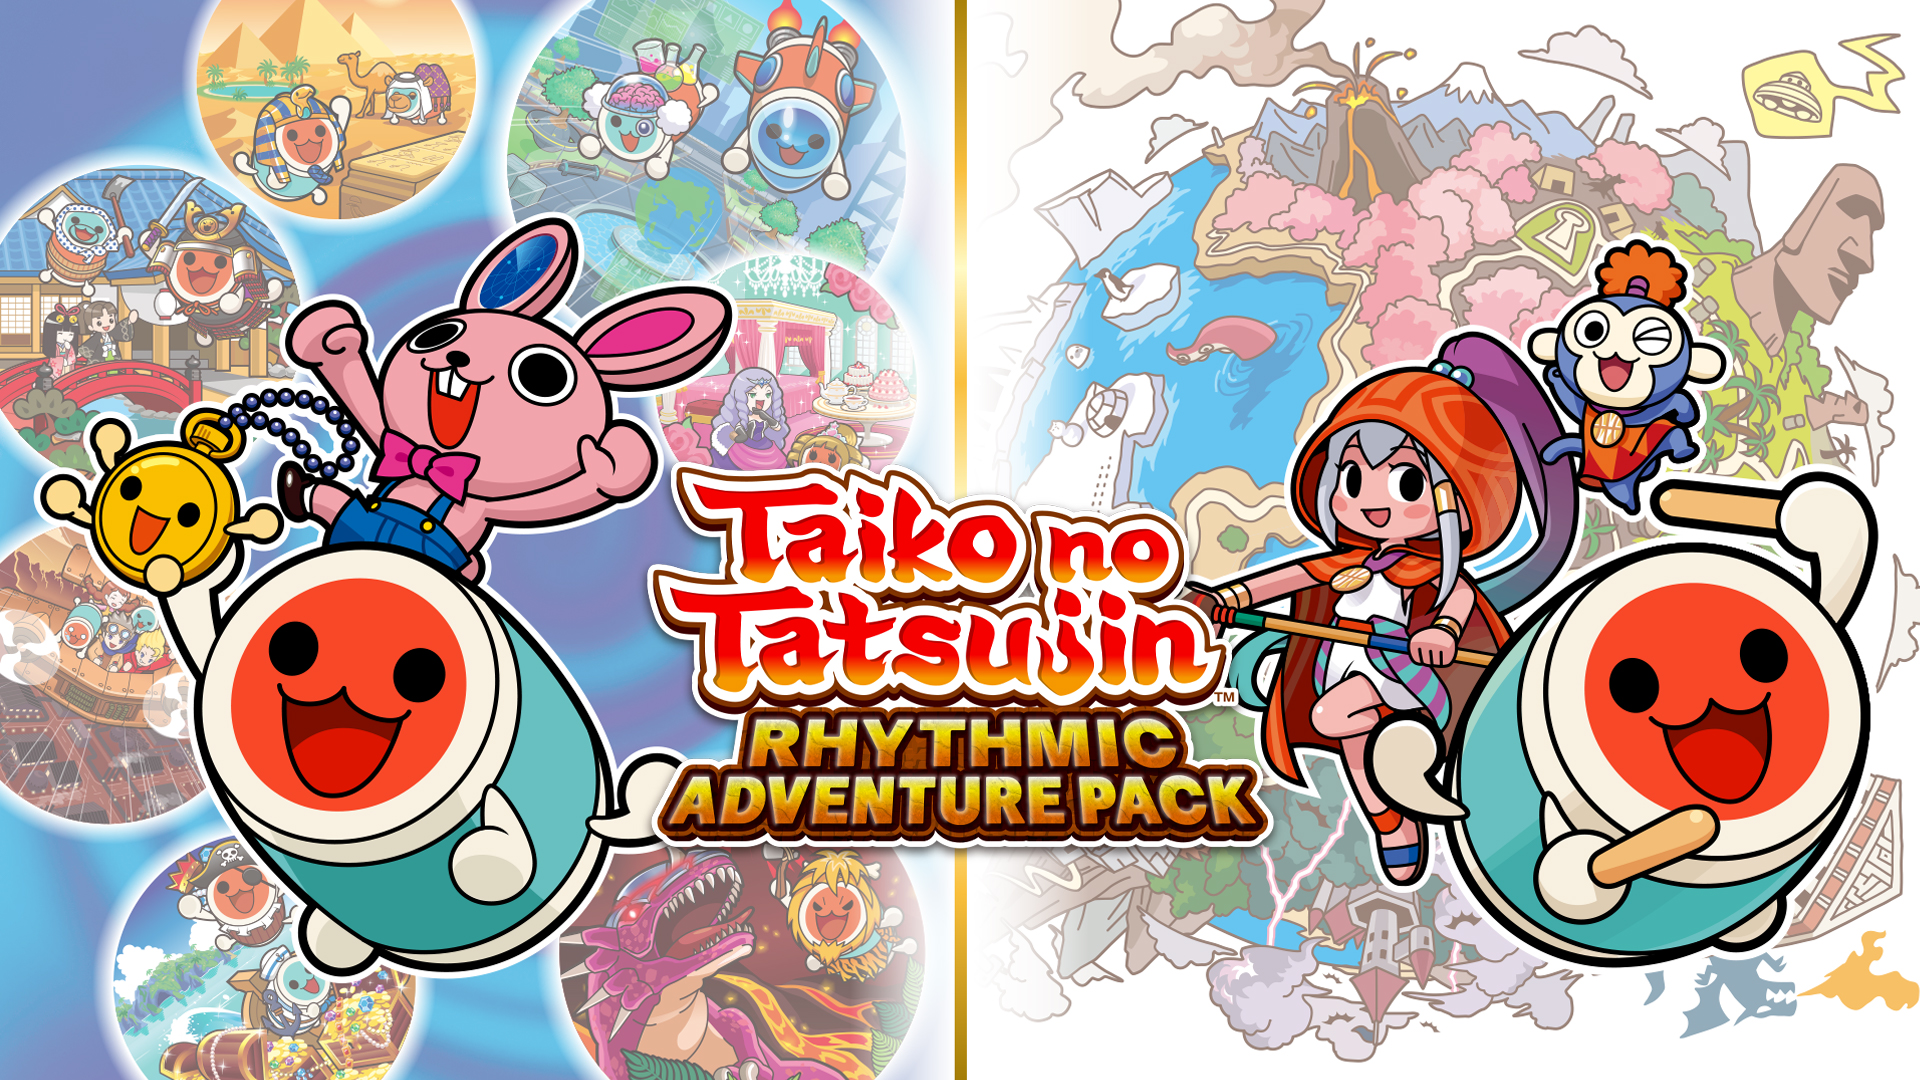 TAIKO NO TATSUJIN RHYTHM ADVENTURE 1 e 2: La Storia in nuovi Trailer